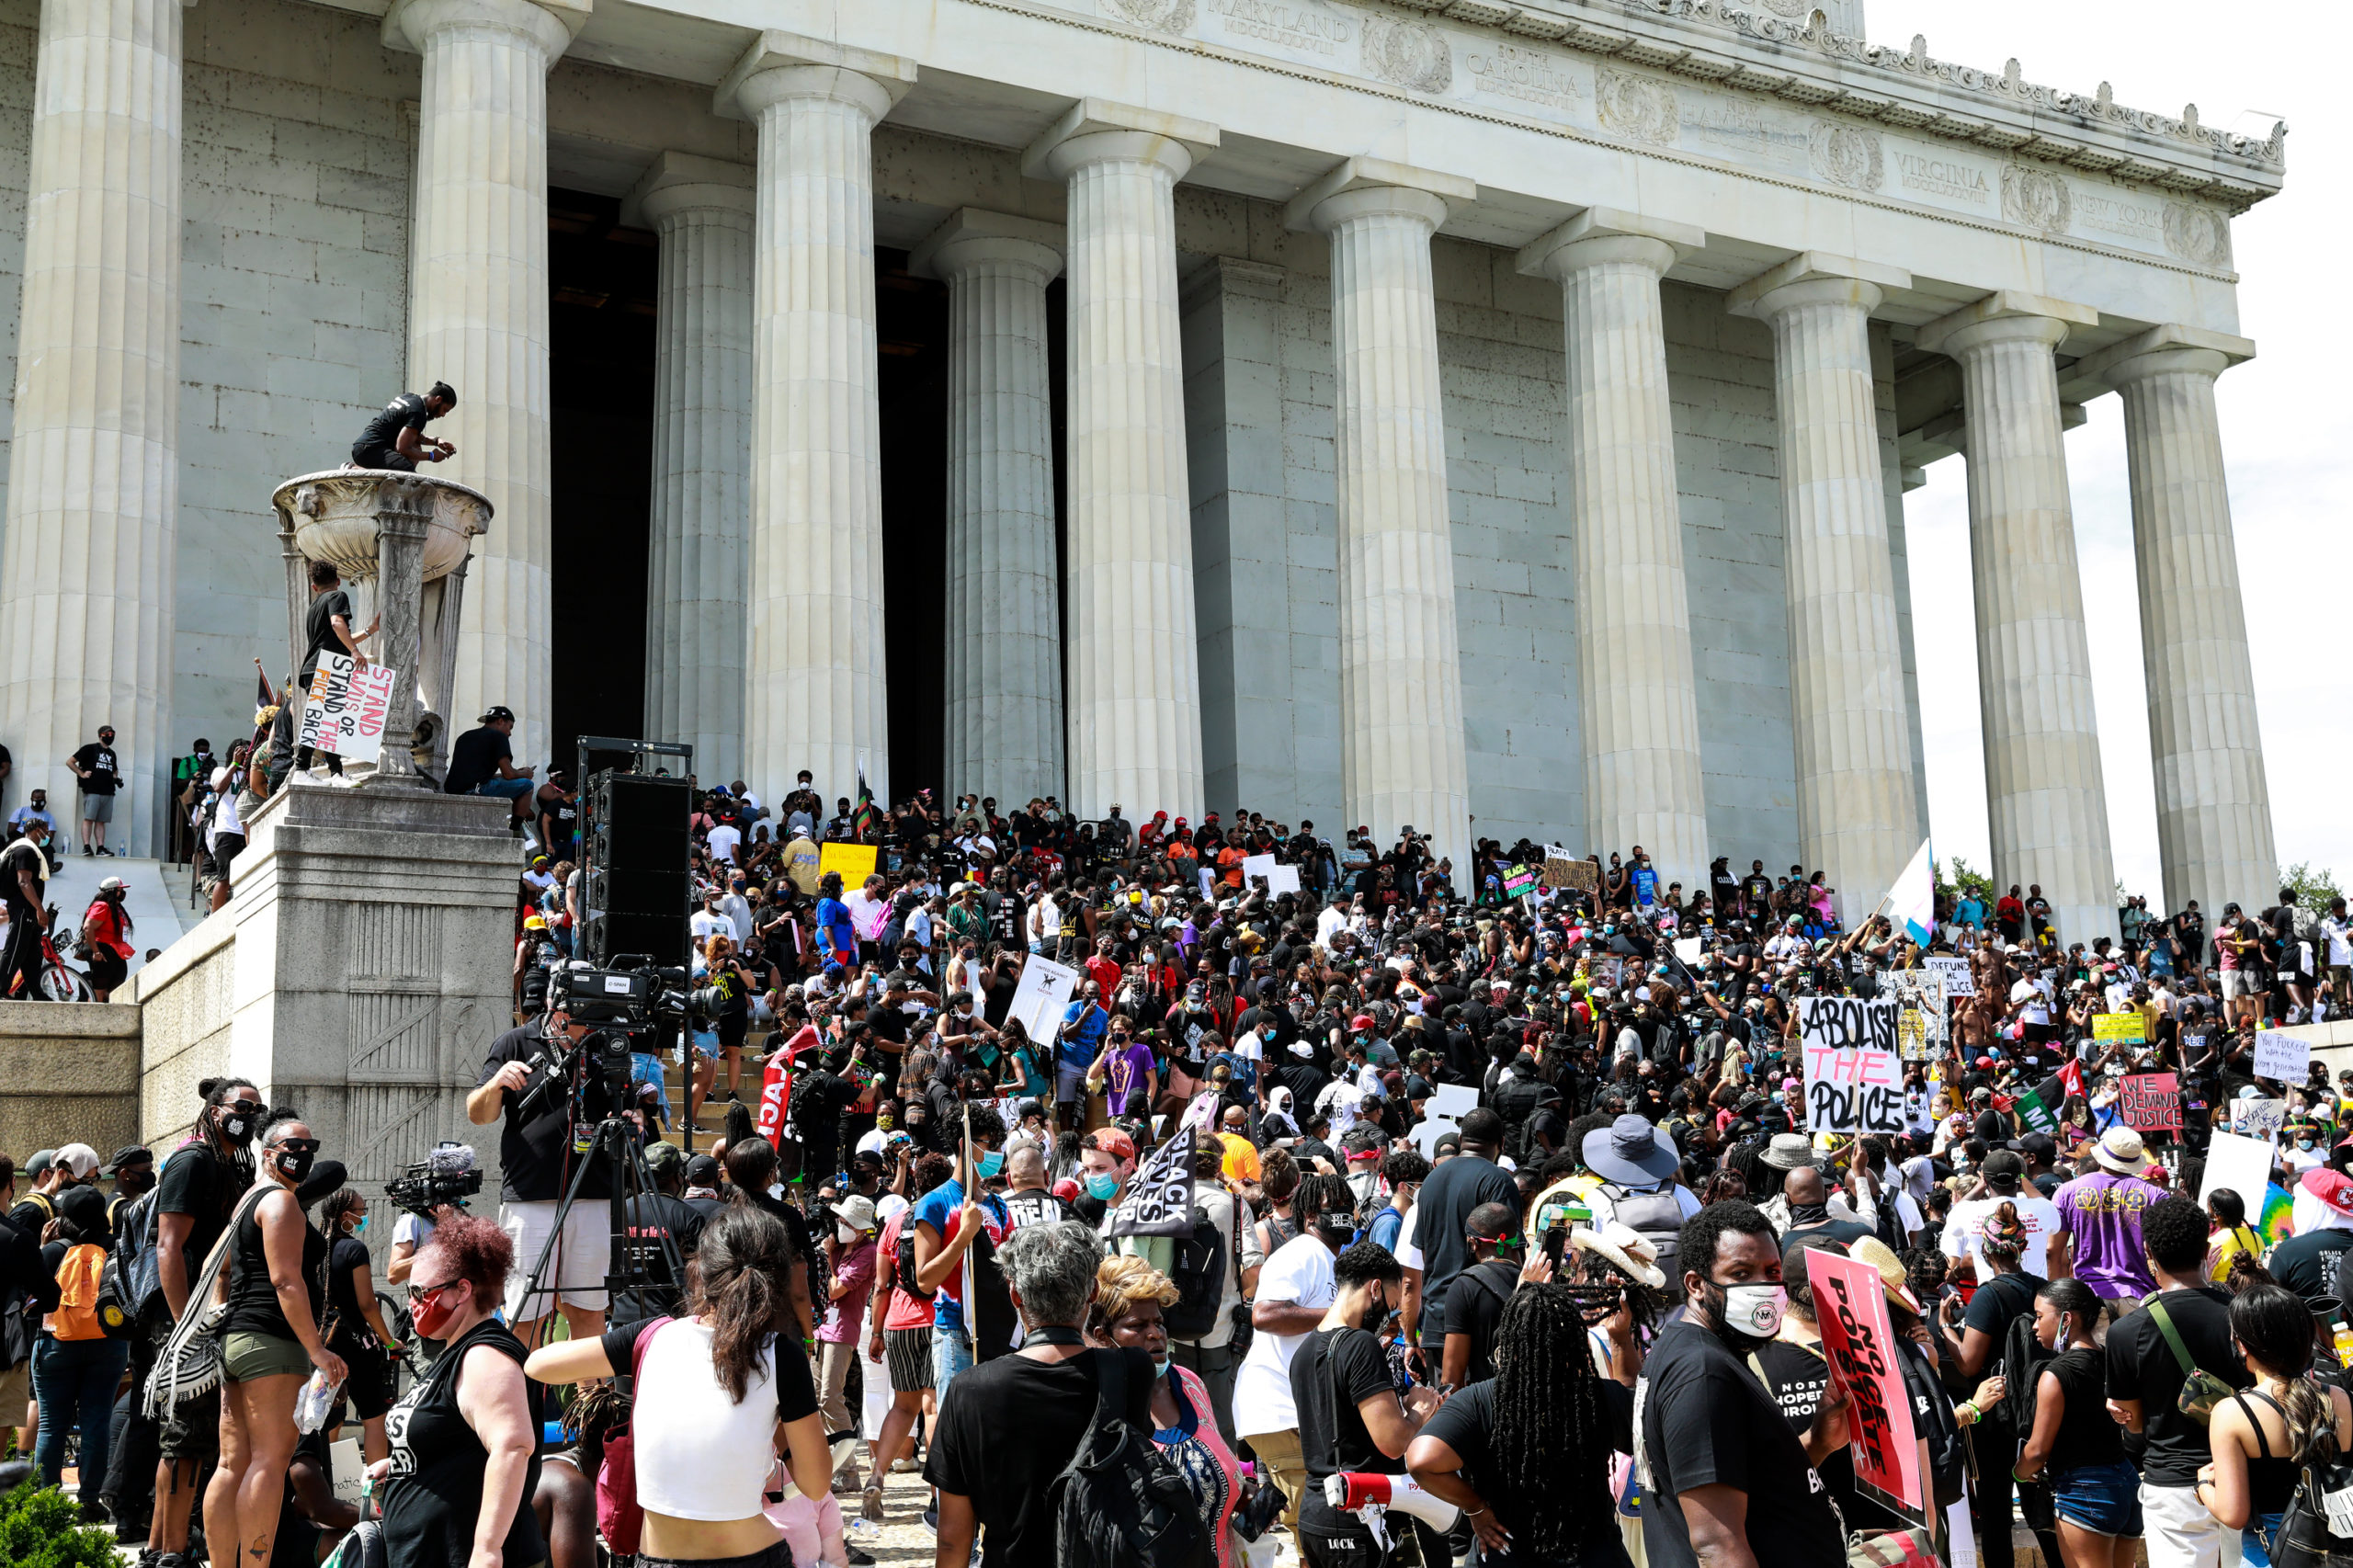 Crowds descend upon the steps of the Lincoln Memorial during the Aug. 28 protest in Washington, D.C. (Natasha Moustache/Getty Images)